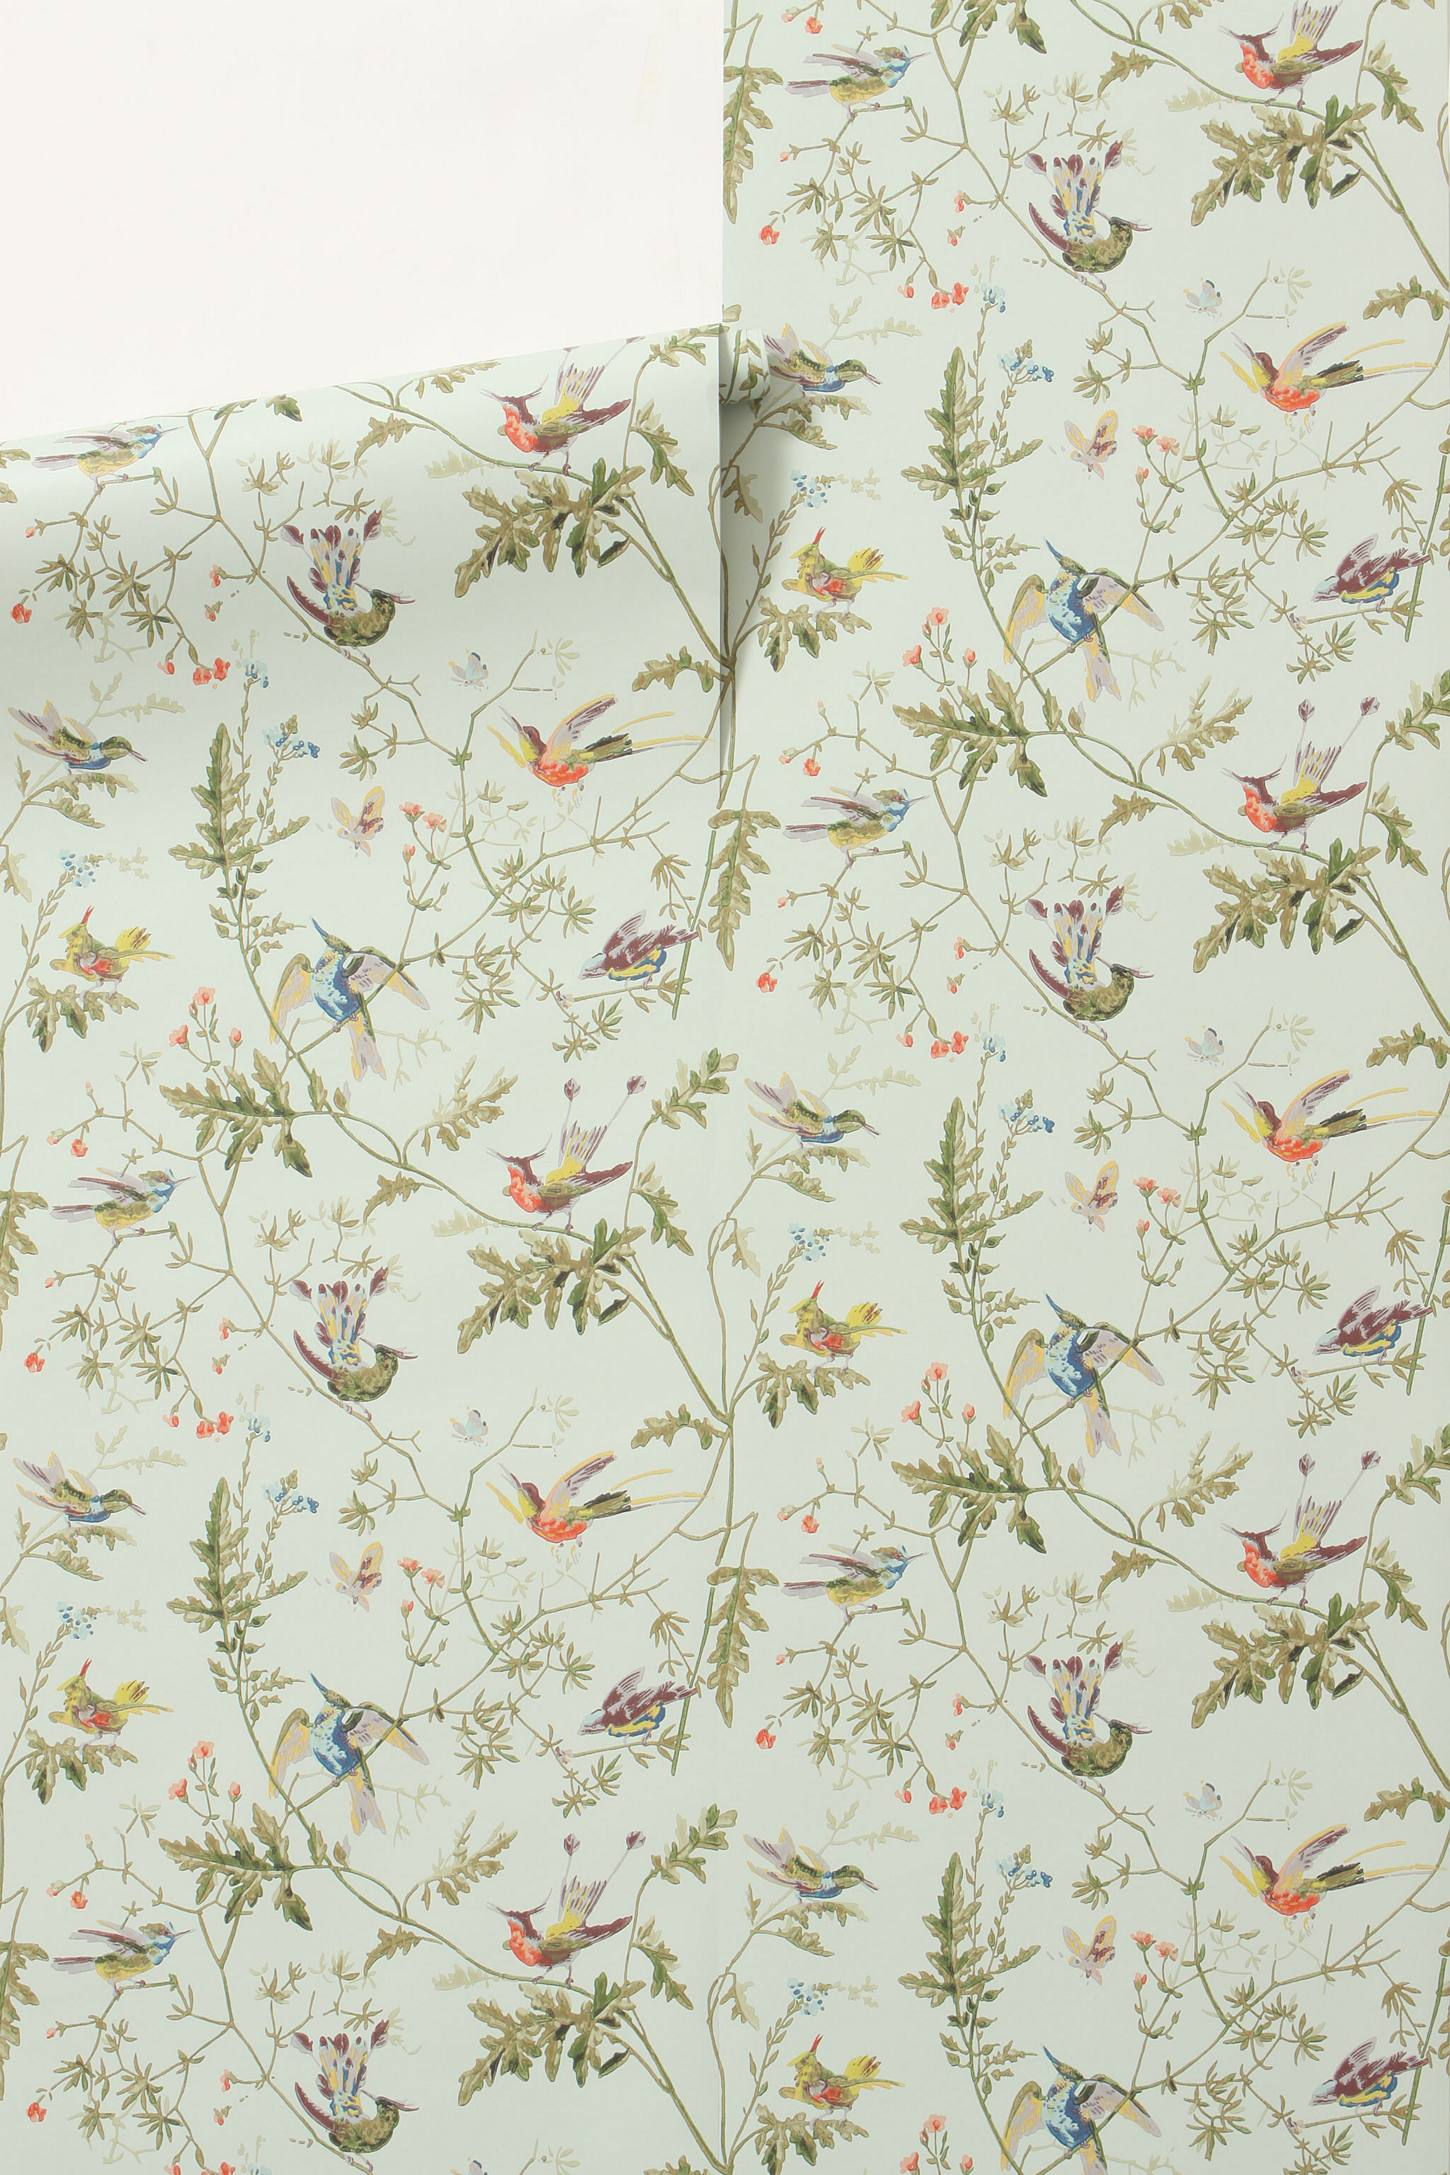 Lookalike for Less Hummingbirds Wallpaper   York Avenue 1450x2175